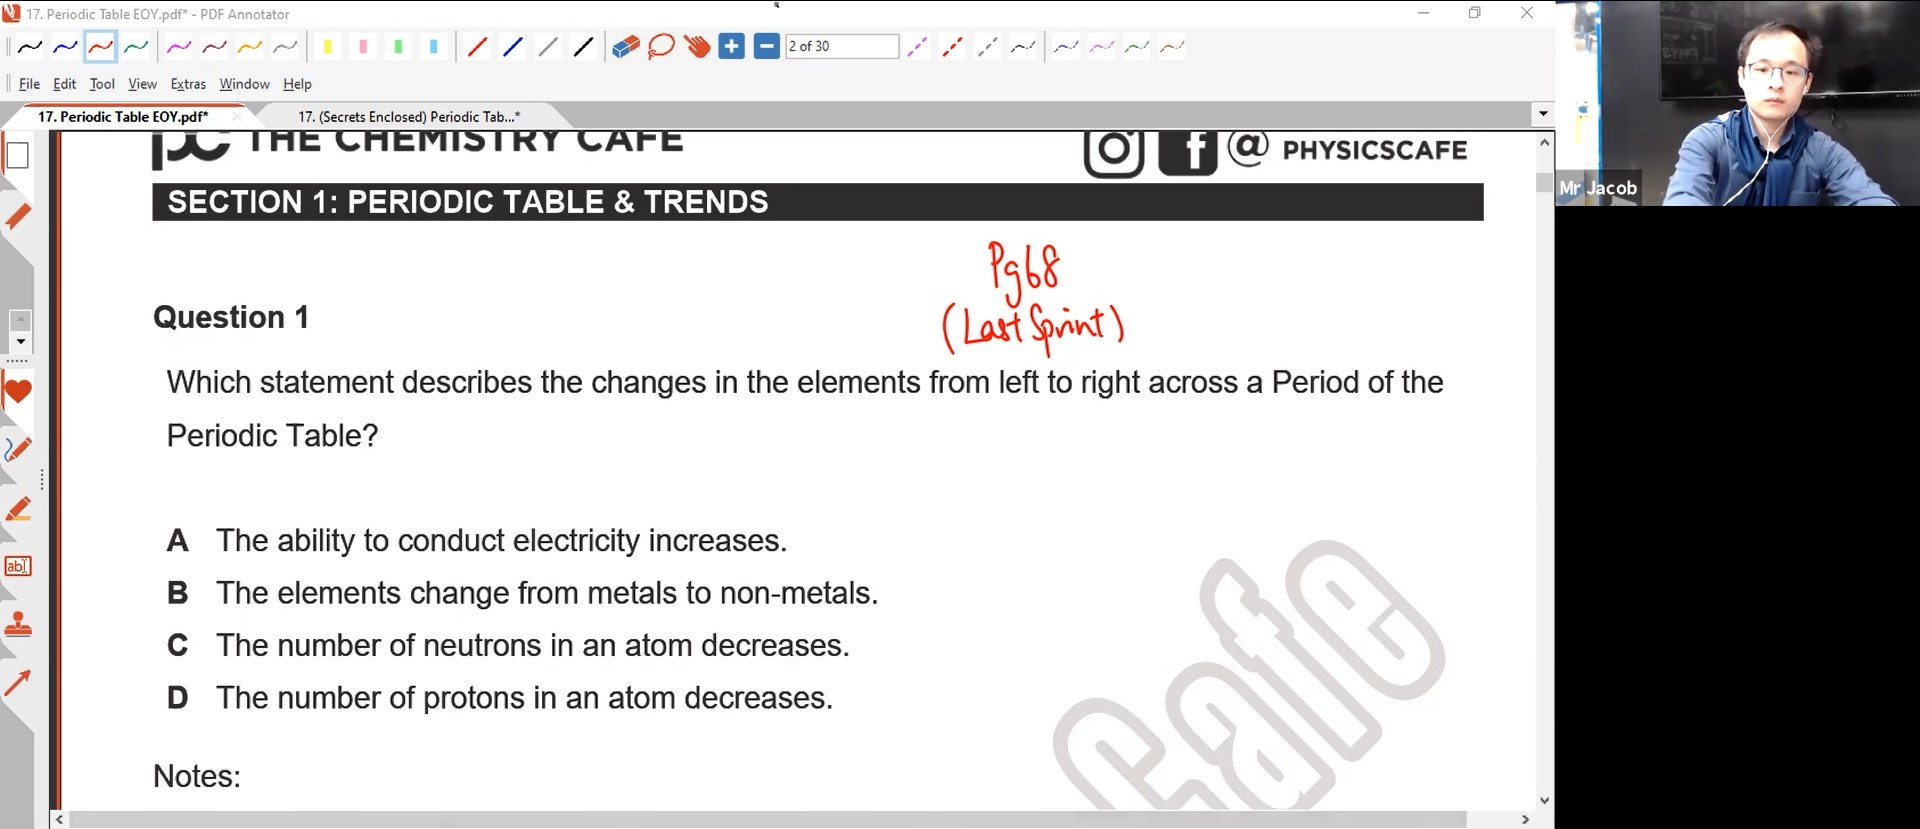 27. EOY - Periodic Table L1